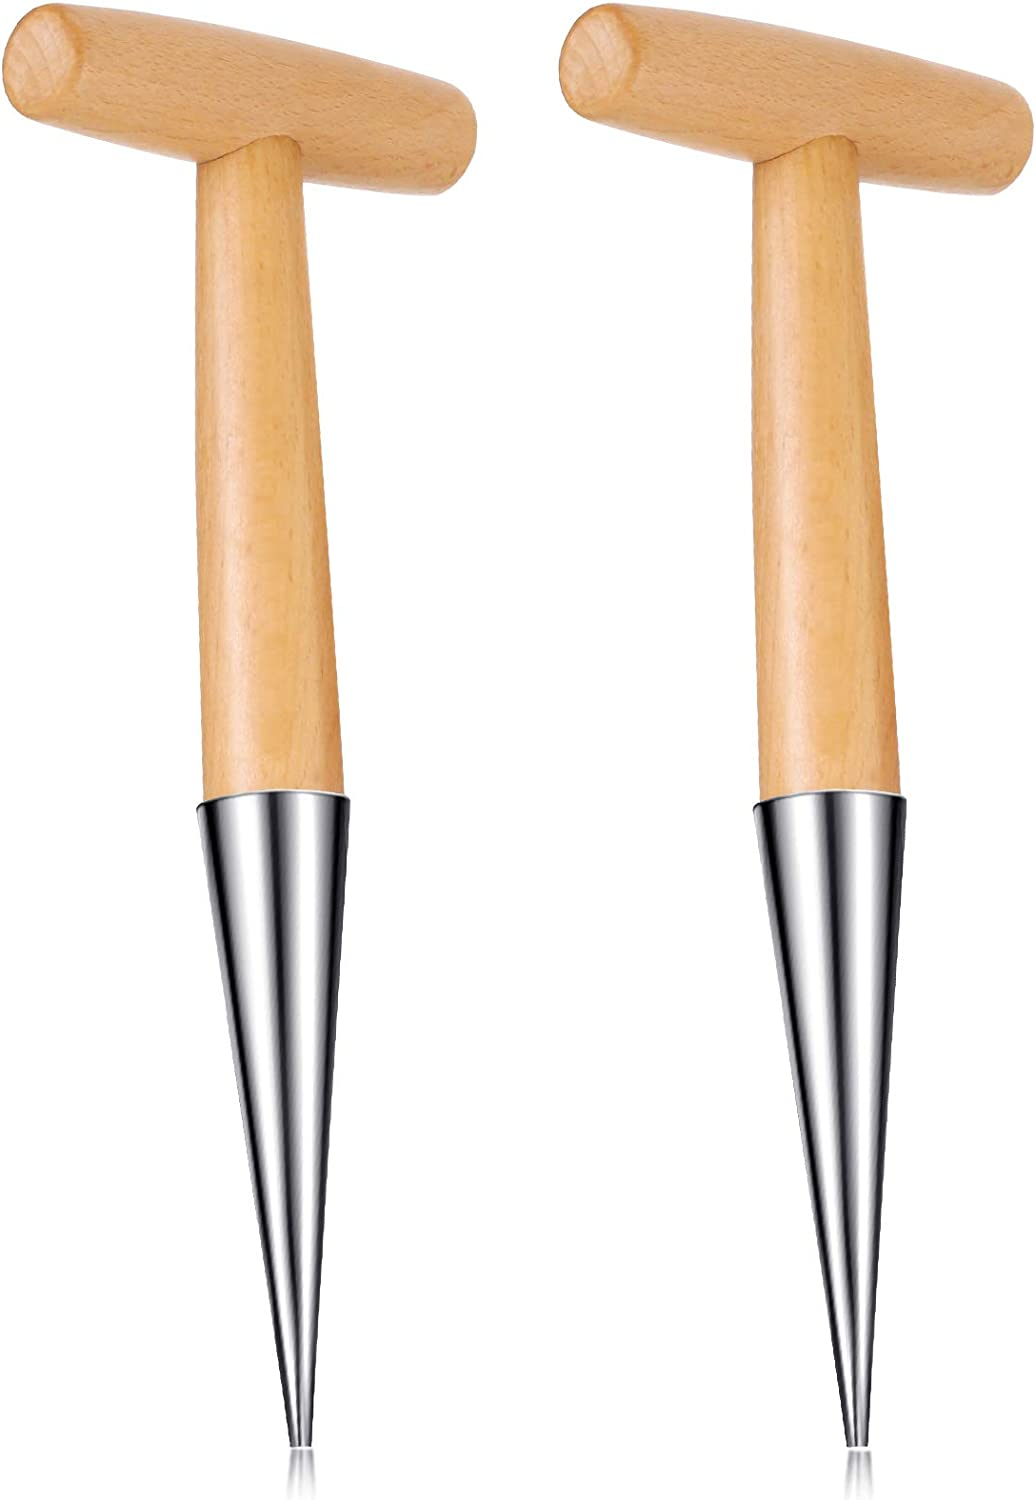 2 Pieces 11 Inch Stainless Steel Hand Dibber Garden Tools Wooden Dibbers Dibbler Bulb Planter for Planting Seeds and Bulbs